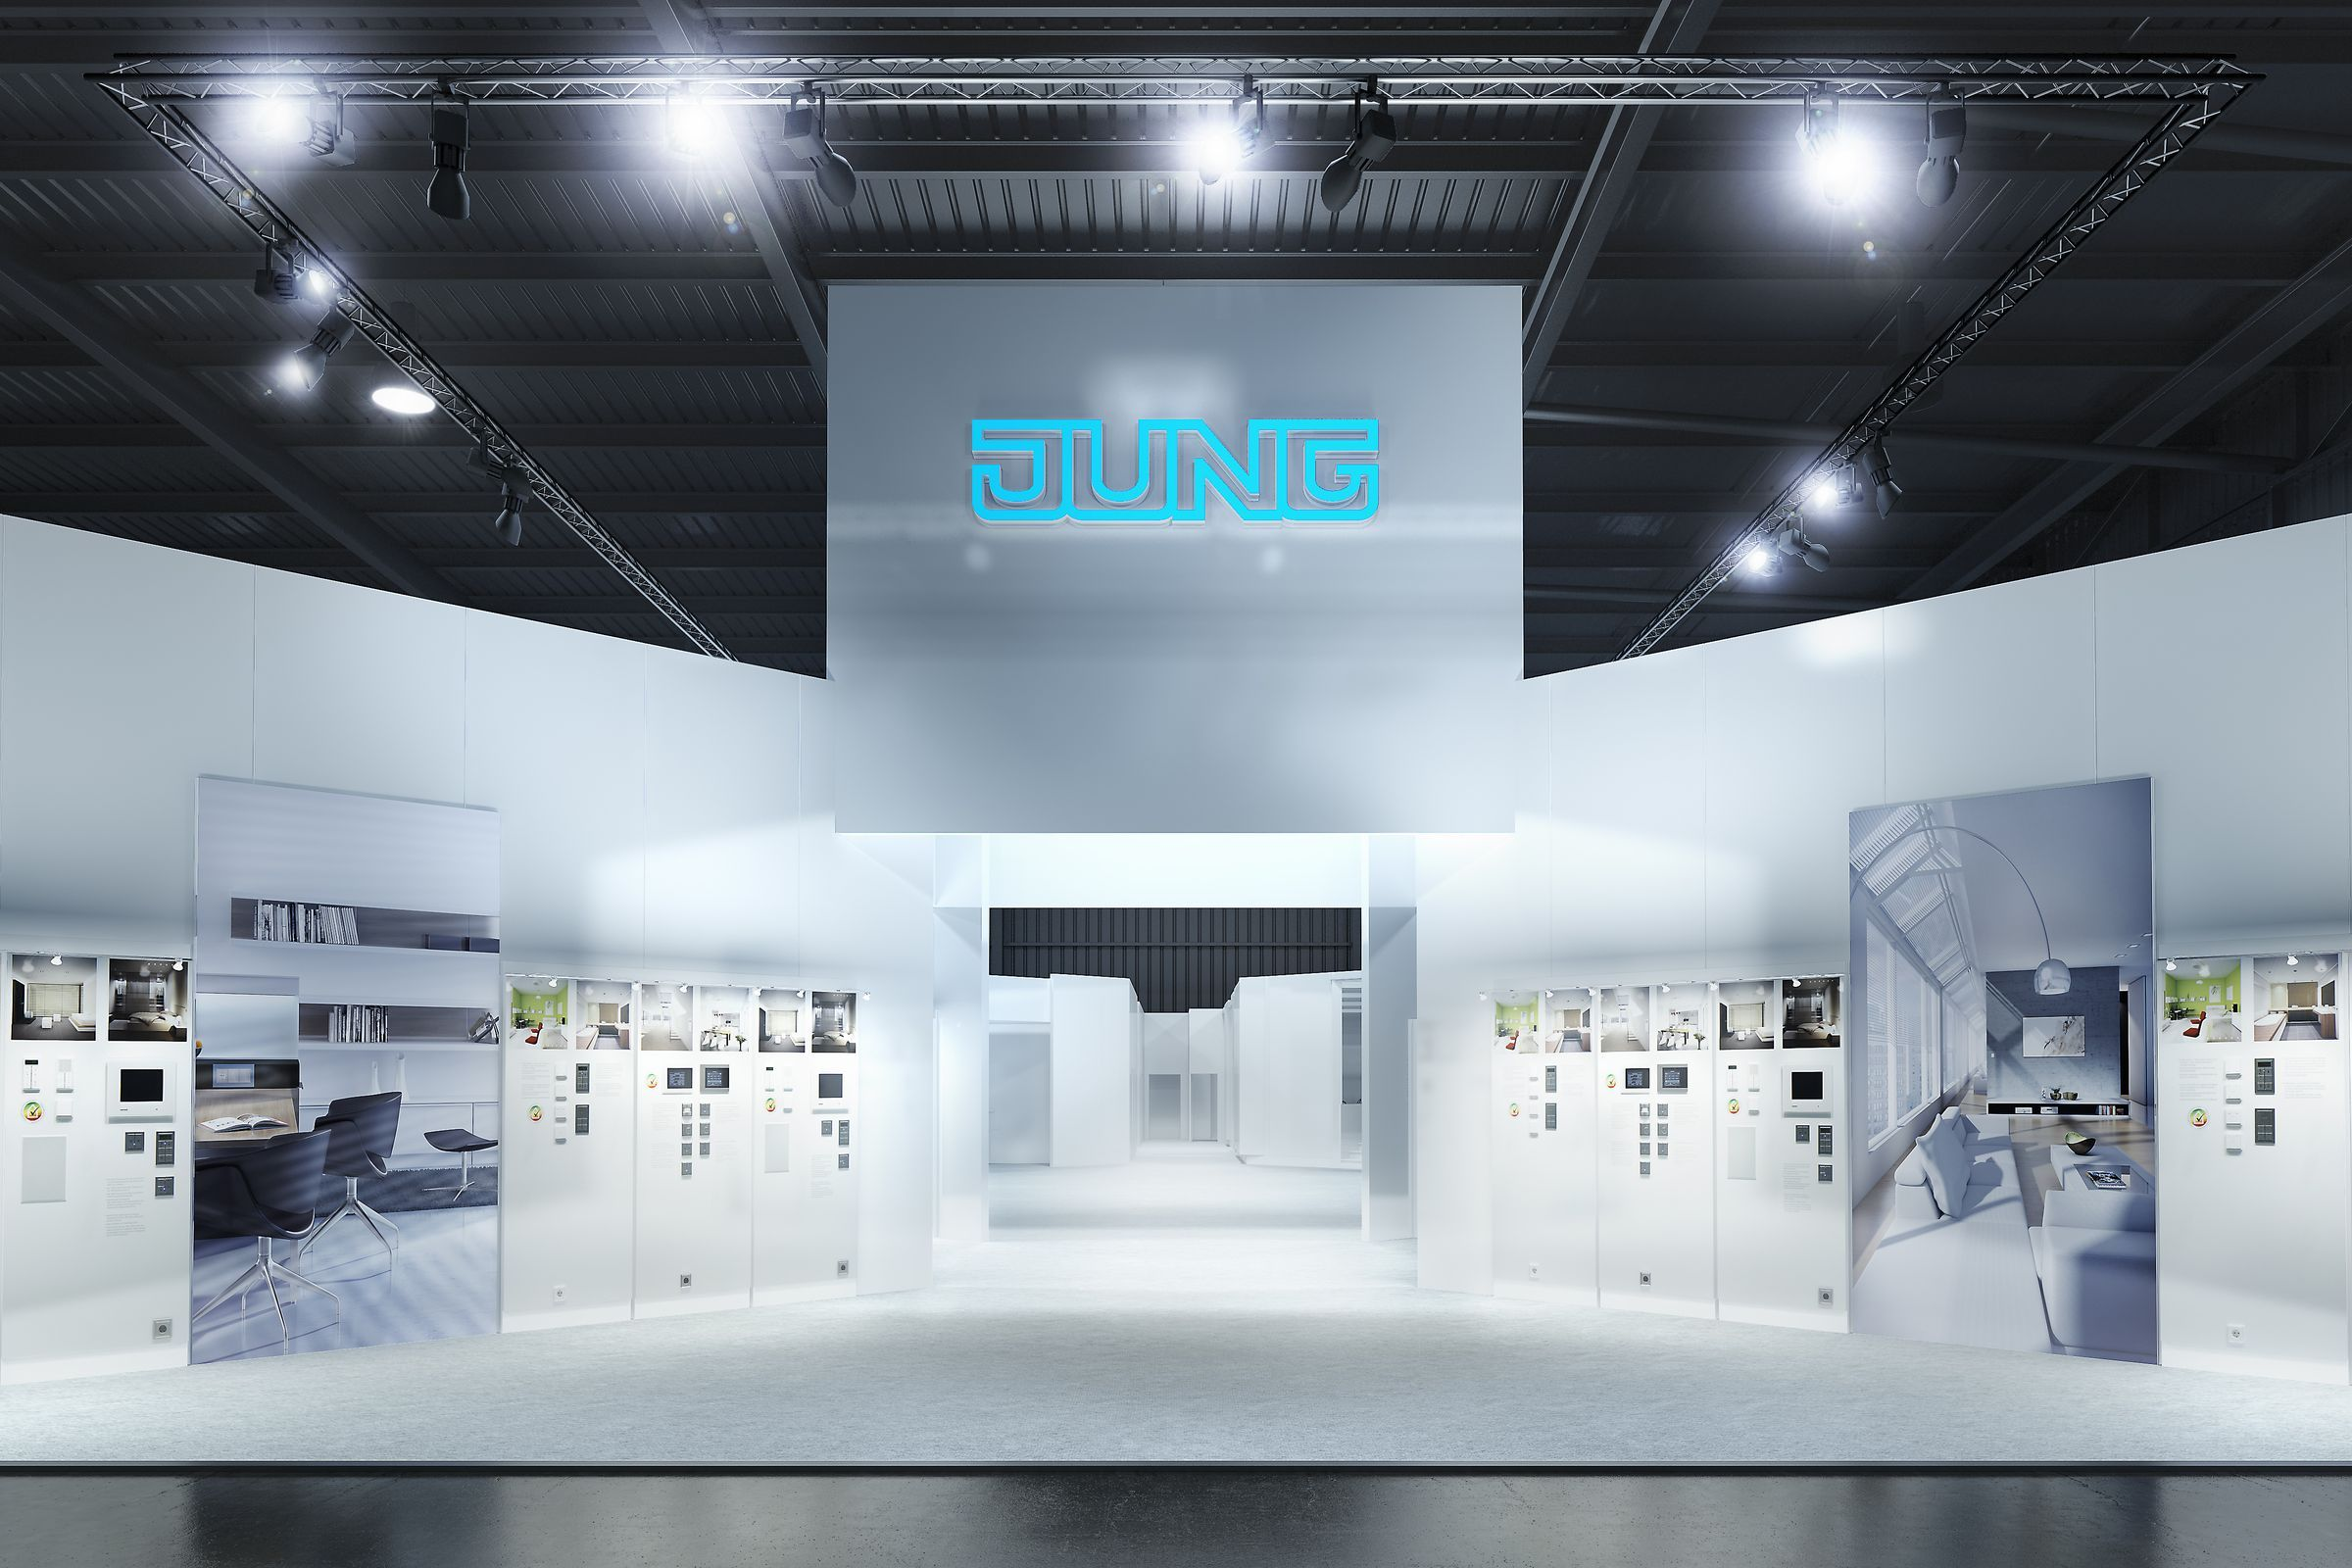 Jung_Light_Building_2012_Renderings ### Jung_Messe_Stand_2012_Eingang_Cam1_120117_01